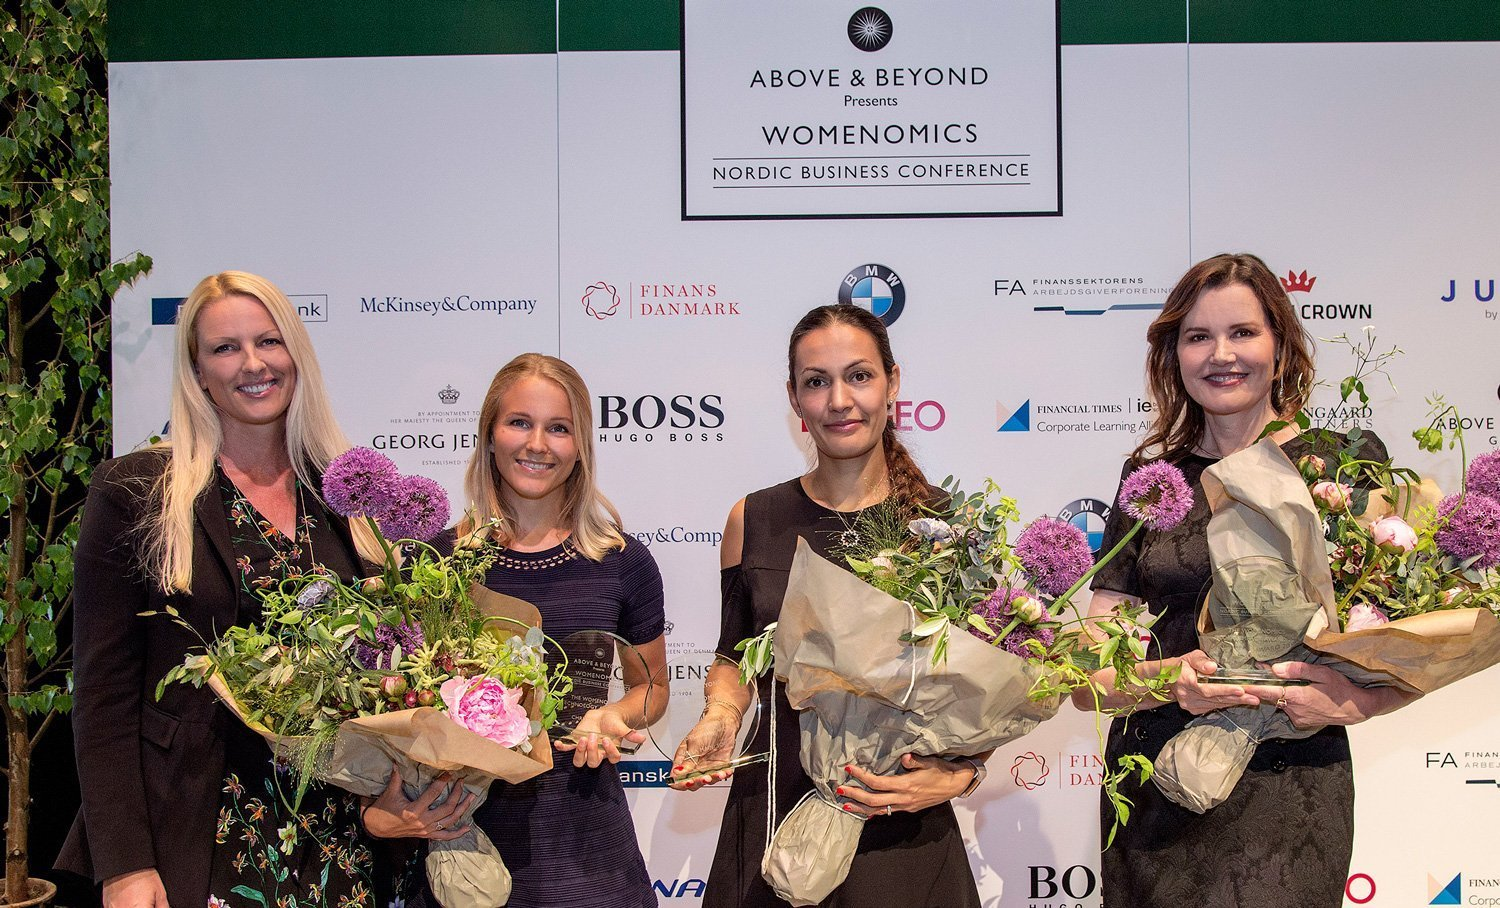 Womenomics Awards Recipients 2018